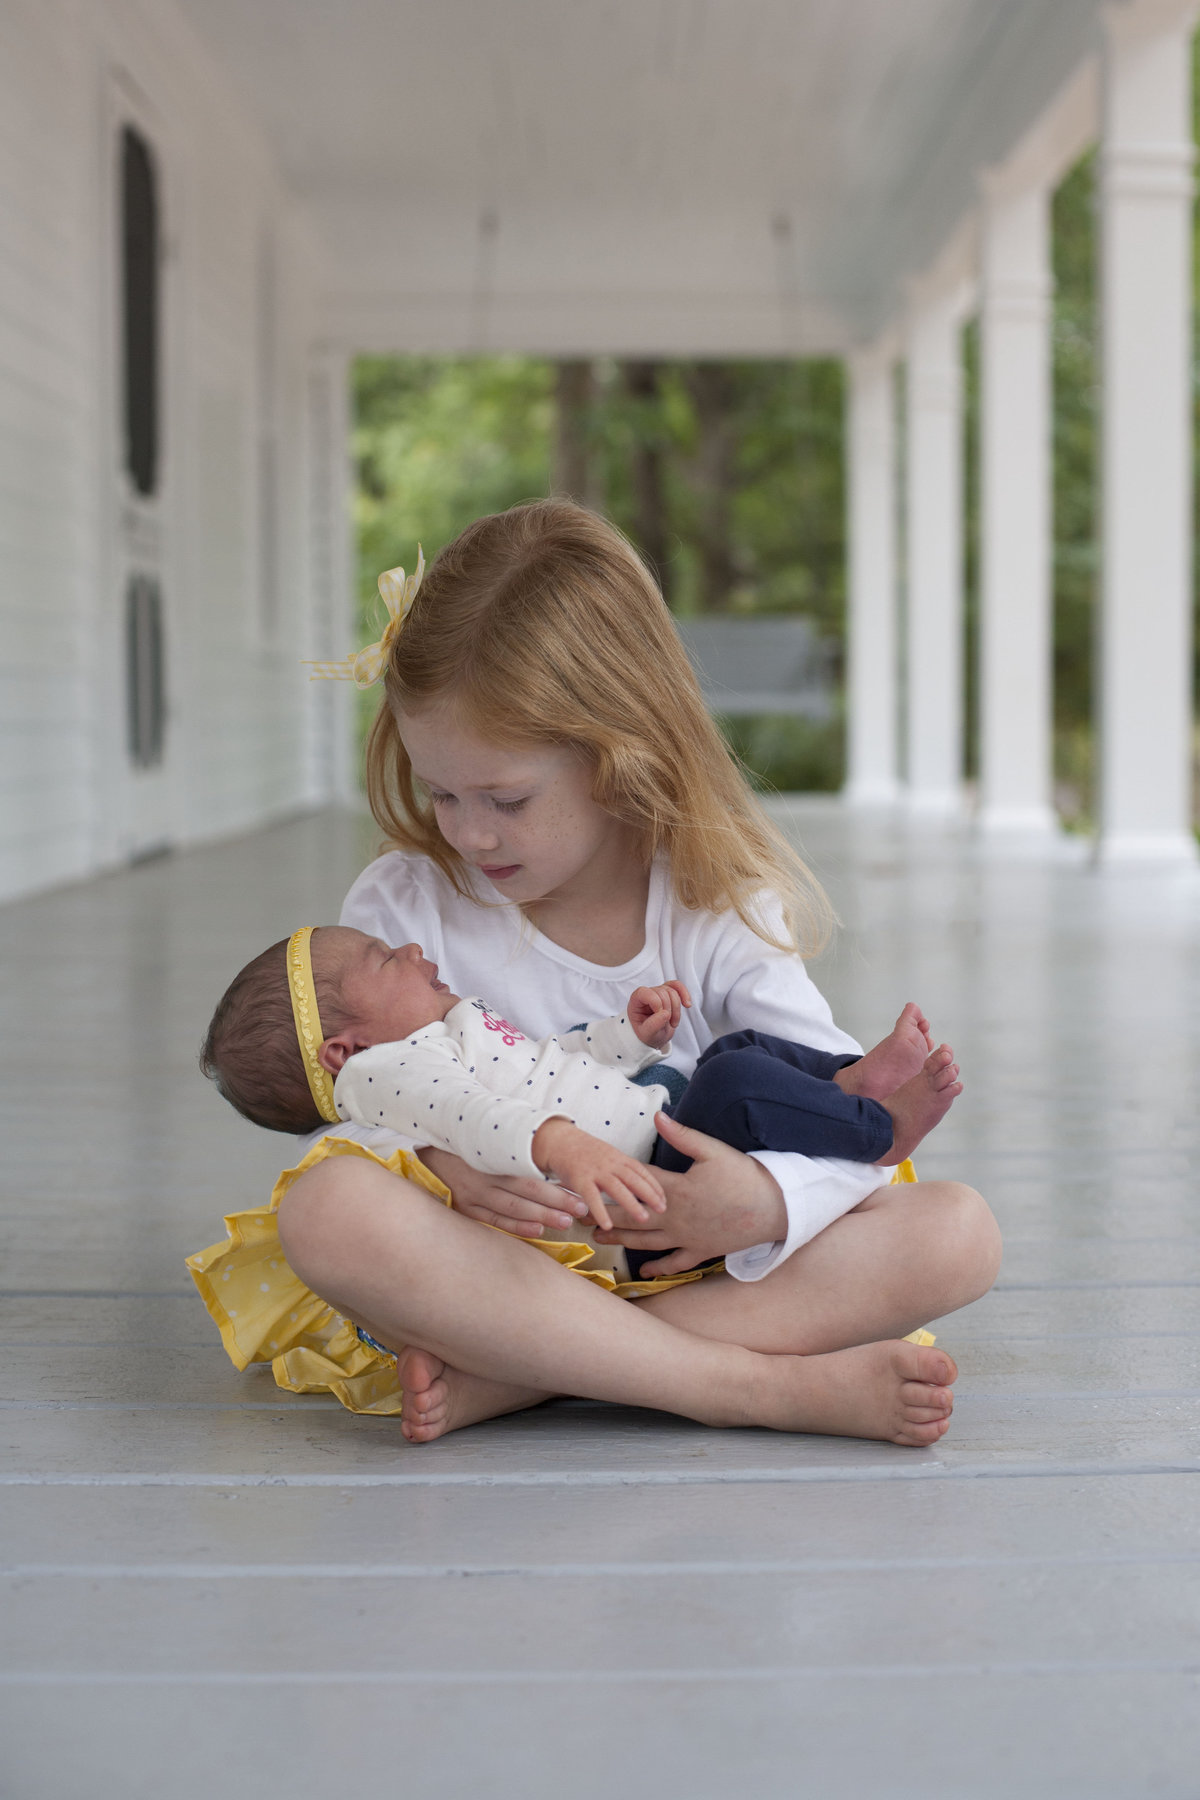 monroe_photographer_a_focused_life_photography_newborn_siblings_freemans_mill_park_gwinnett_county_toddler_girl_holding_newborn_baby_sister